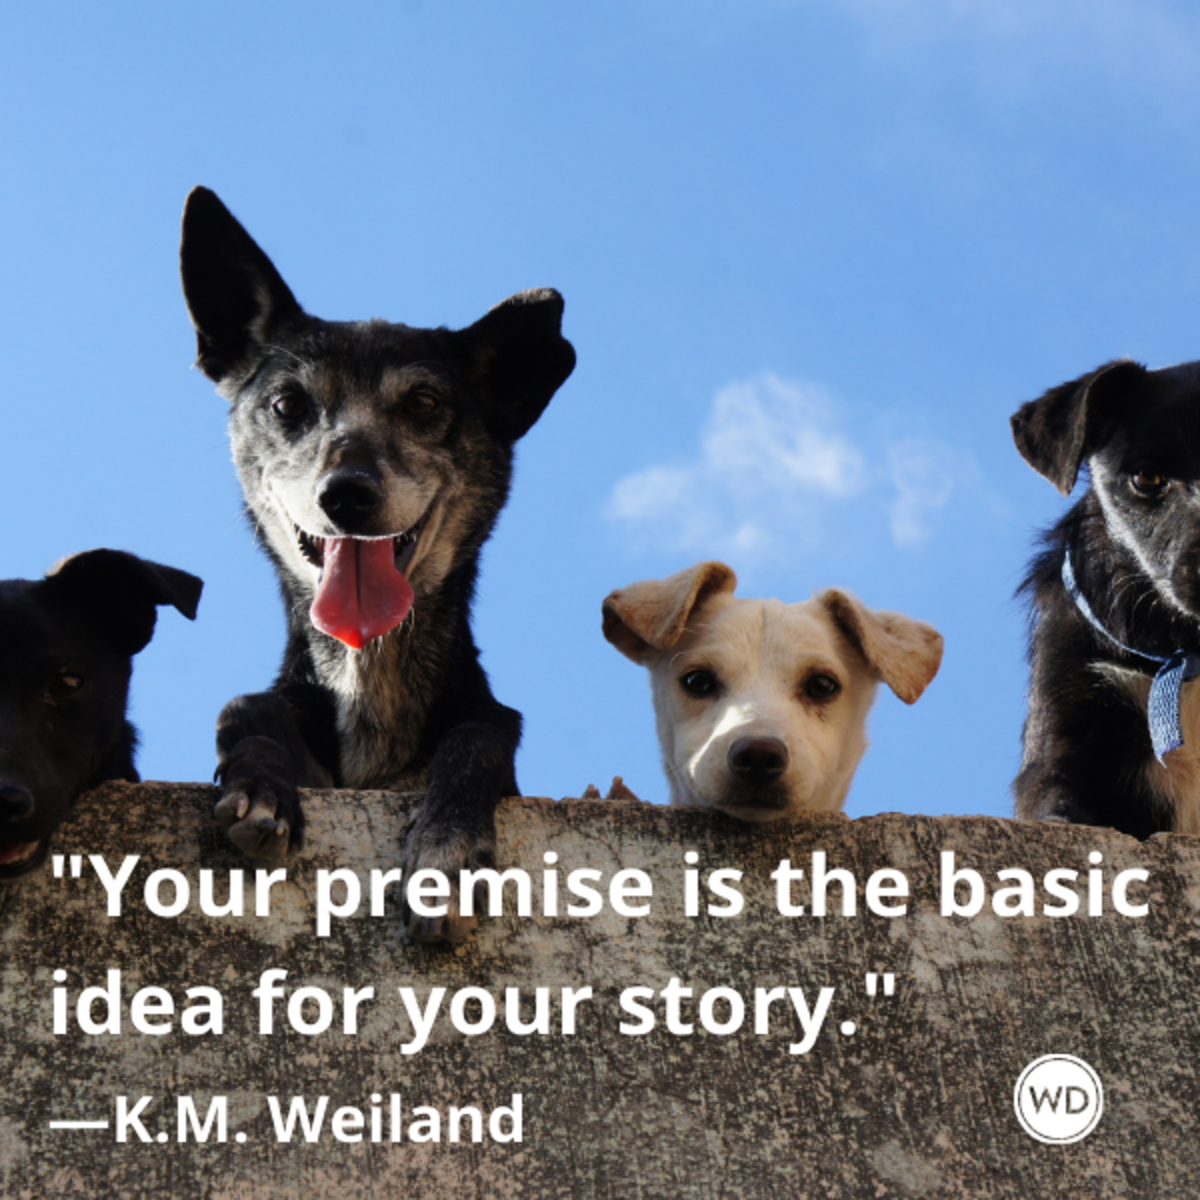 k_m_weiland_quotes_your_premise_is_the_basic_idea_for_your_story_writing_advice_with_dogs